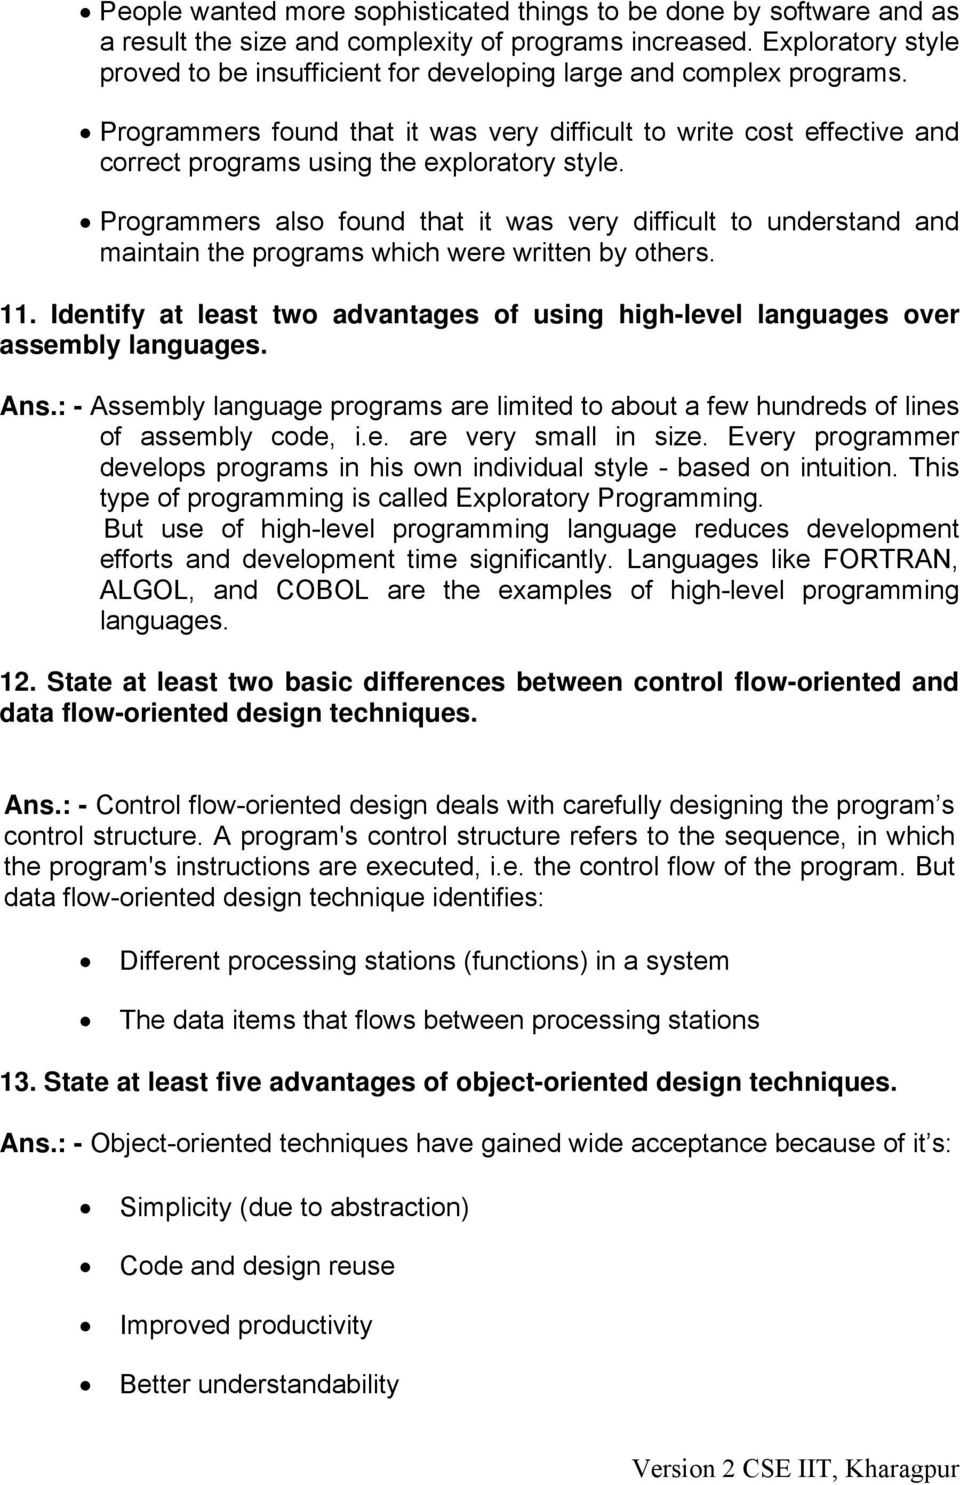 Advantages Of Assembly Language